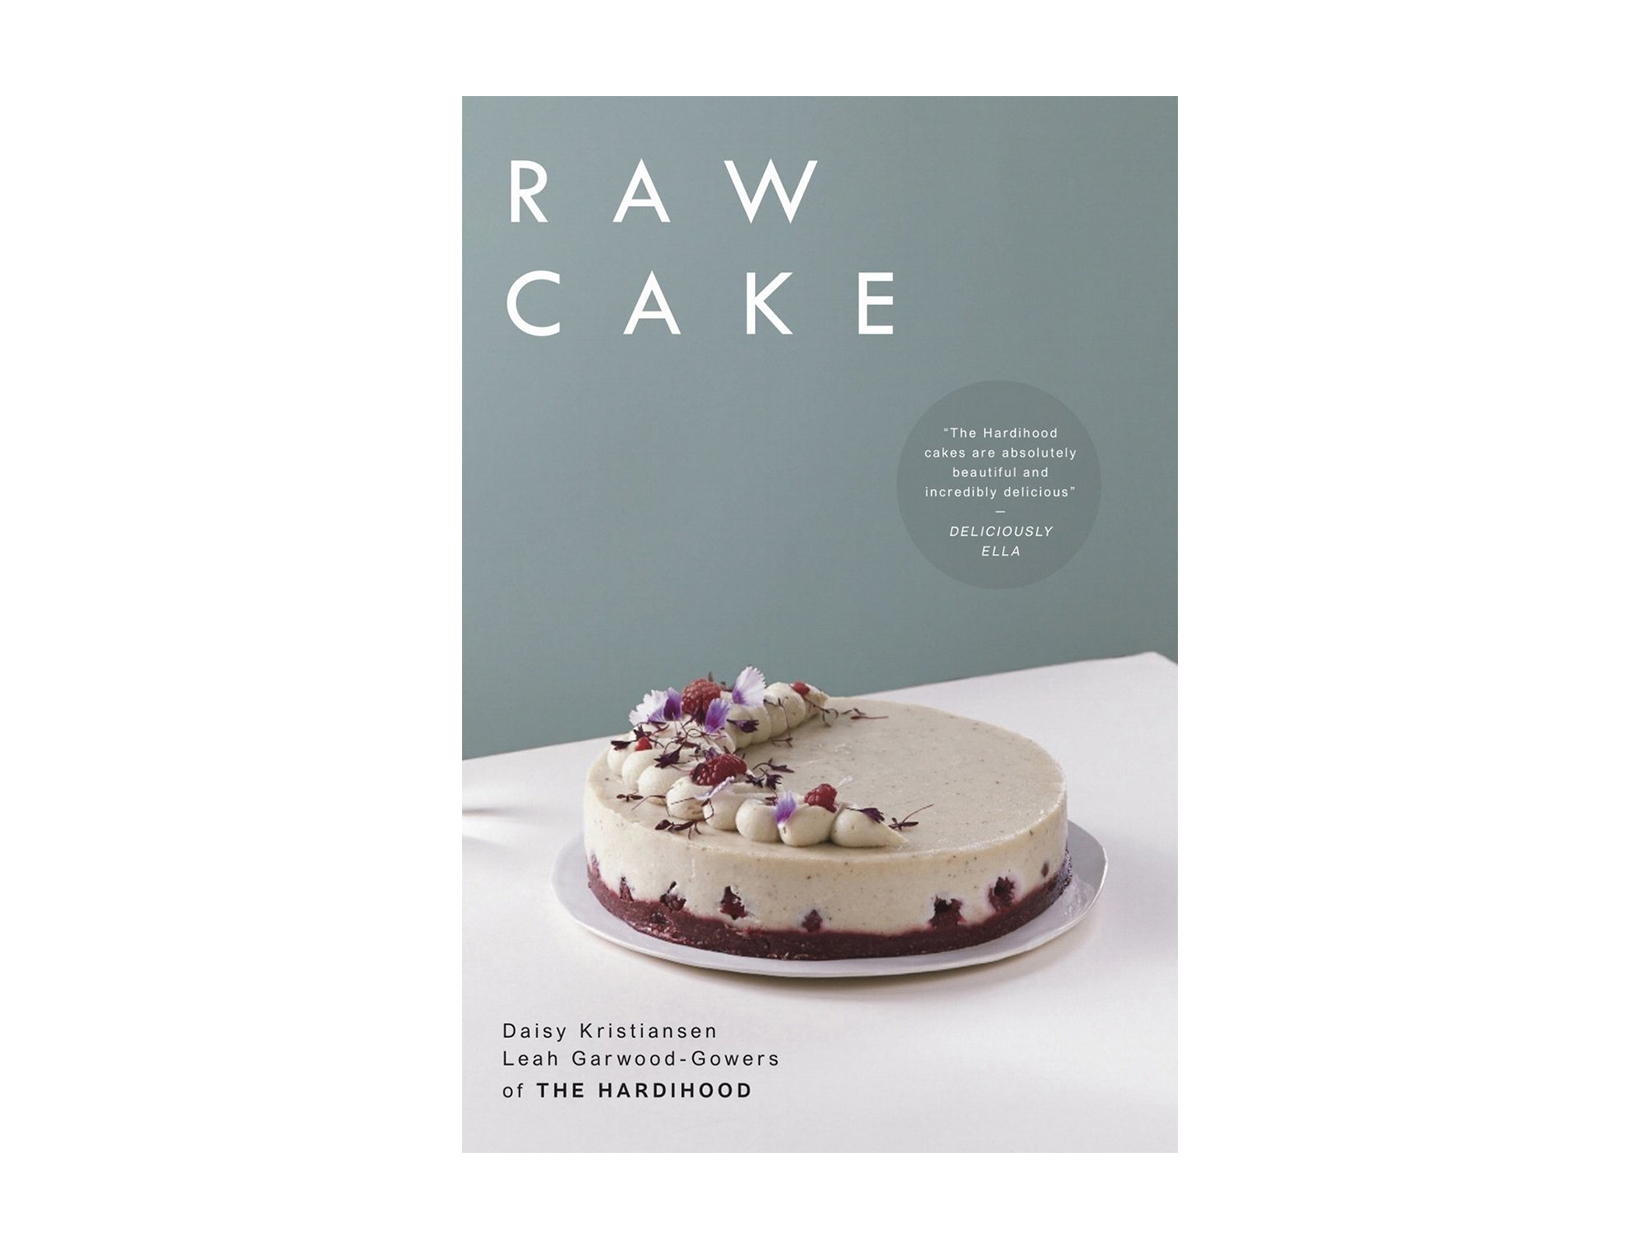 Raw Cake by Daisy Kristiansen and Leah Garwood-Gowers